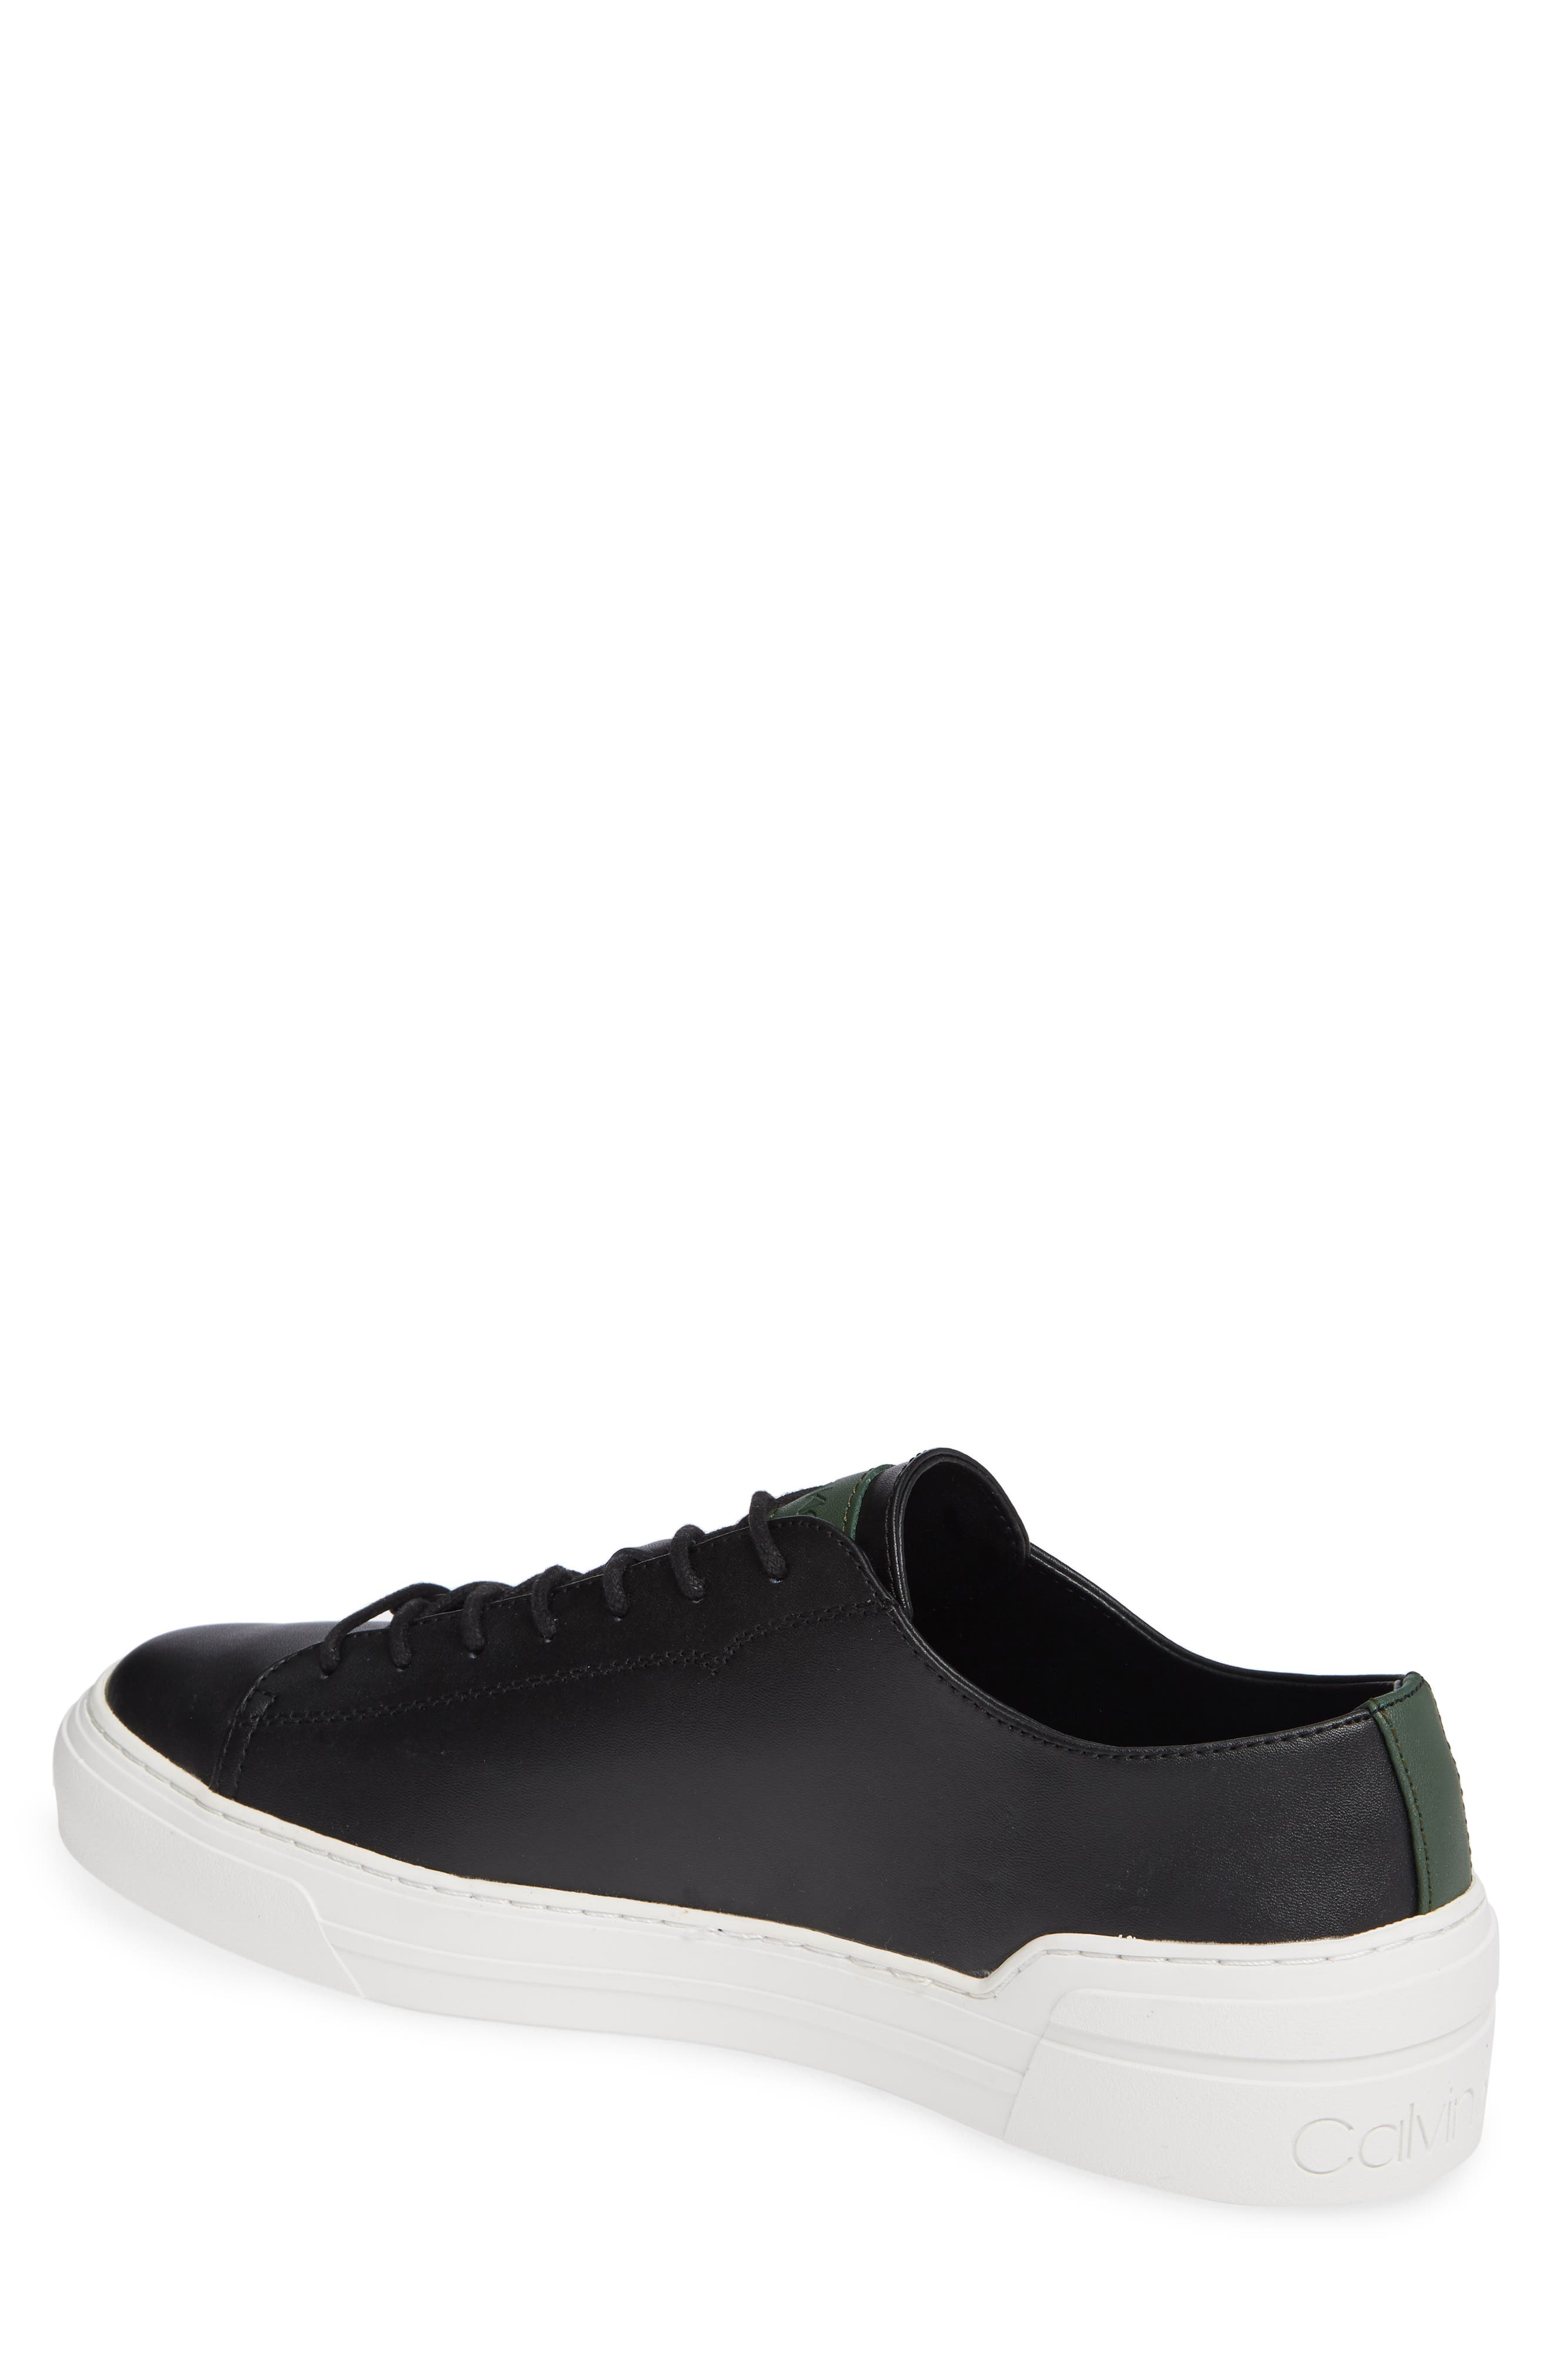 Octavian Low Top Sneaker,                             Alternate thumbnail 2, color,                             BLACK LEATHER